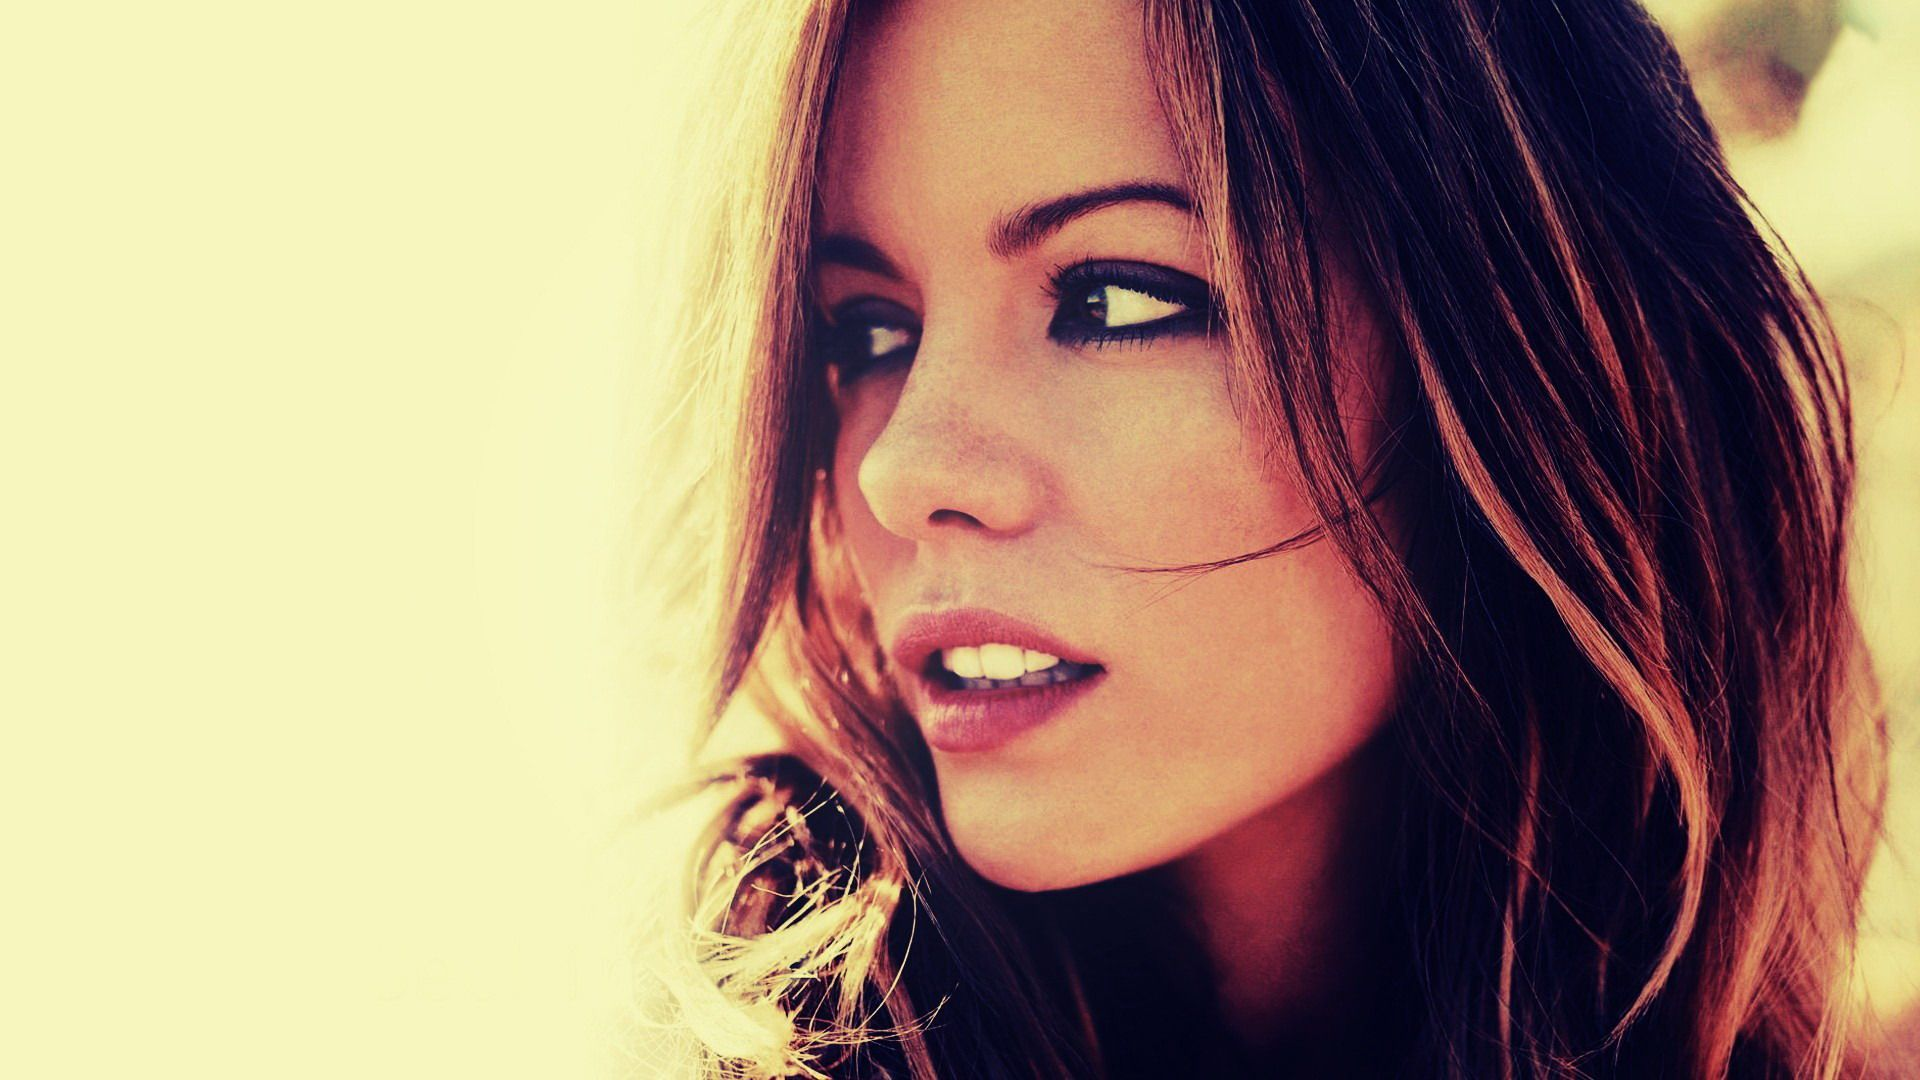 Pin on I Love Kate Beckinsale!!